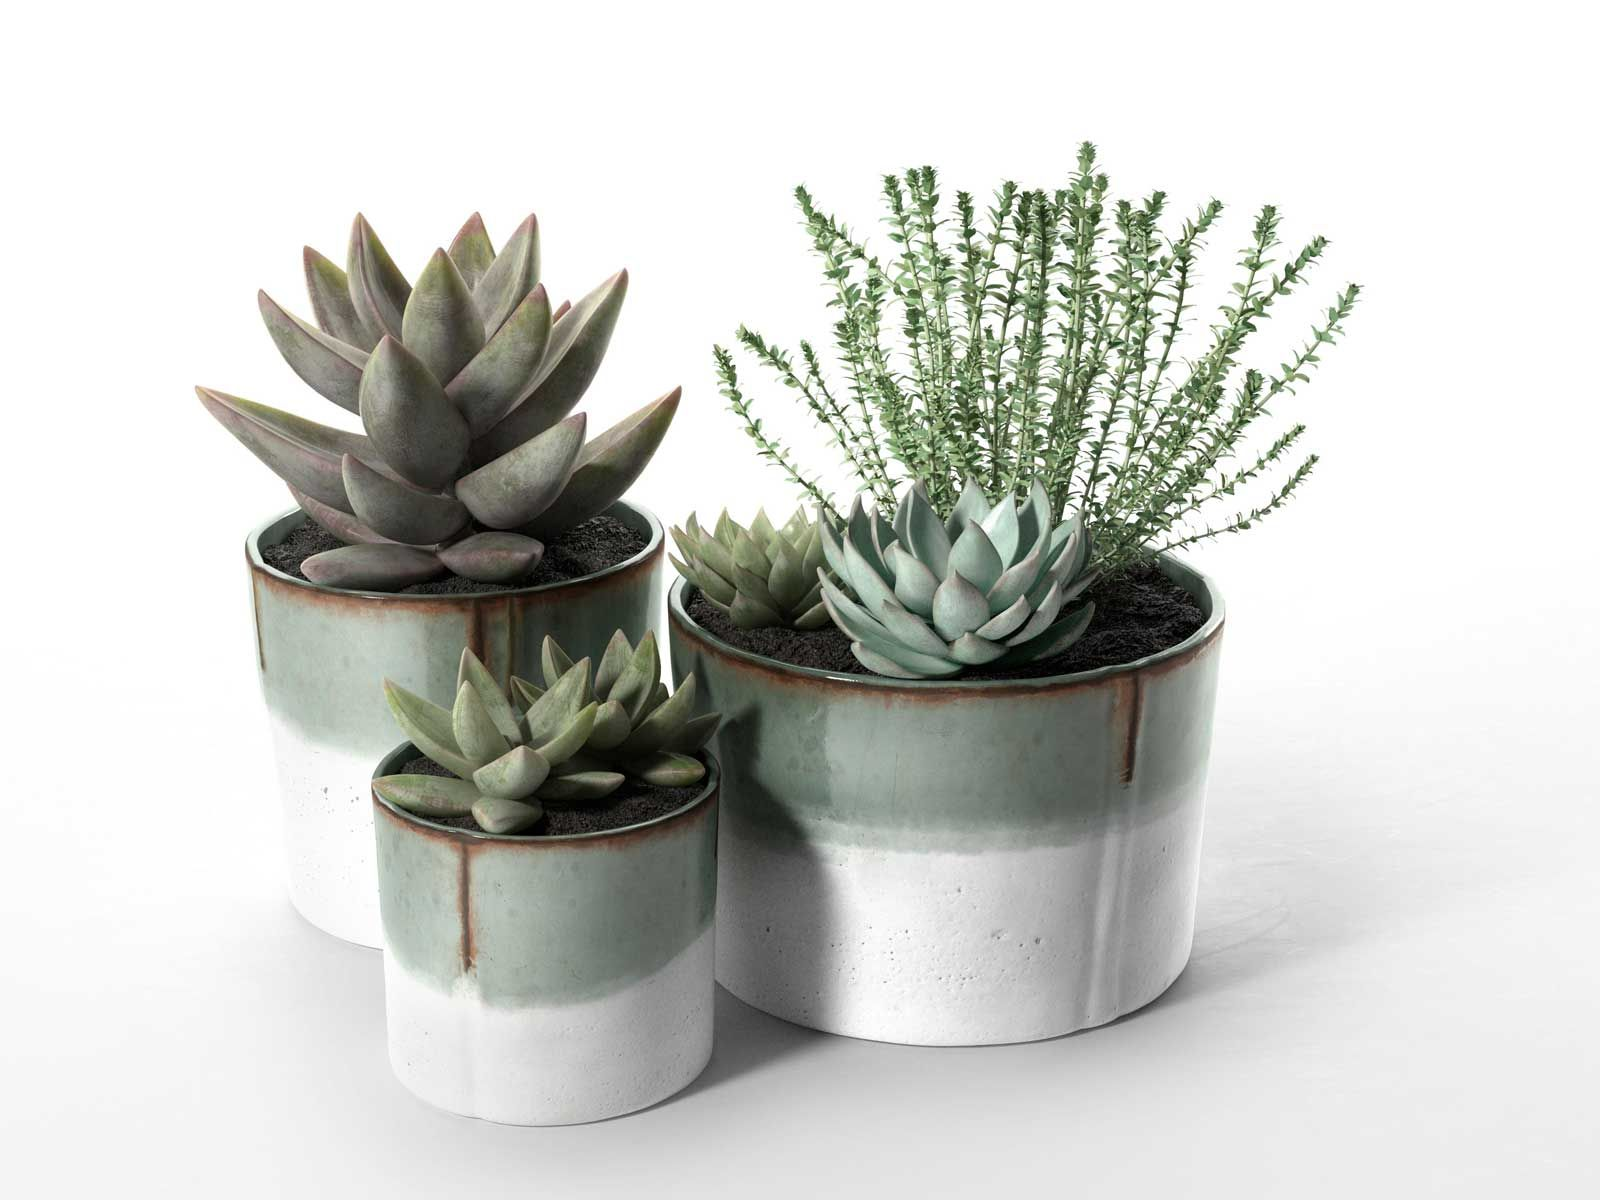 Bathroom Tile Design Software Free Download Succulent Pot Set With Echeveria And Rosemary Plants